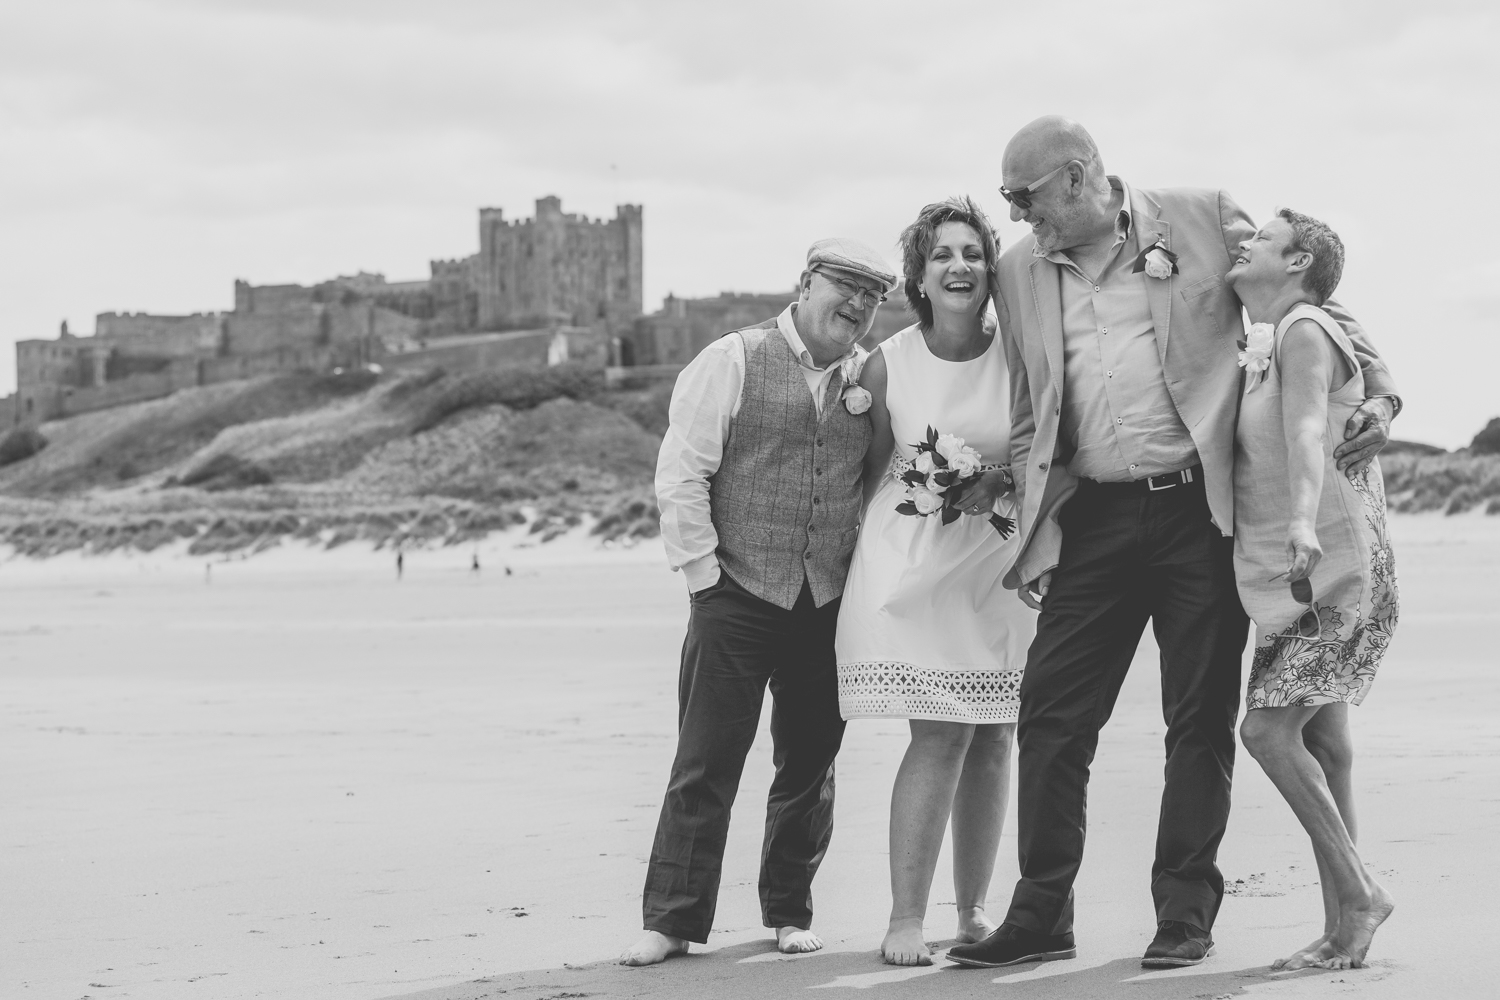 wedding-bamburgh-pictorial-elopement-friends-beach-1027.jpg